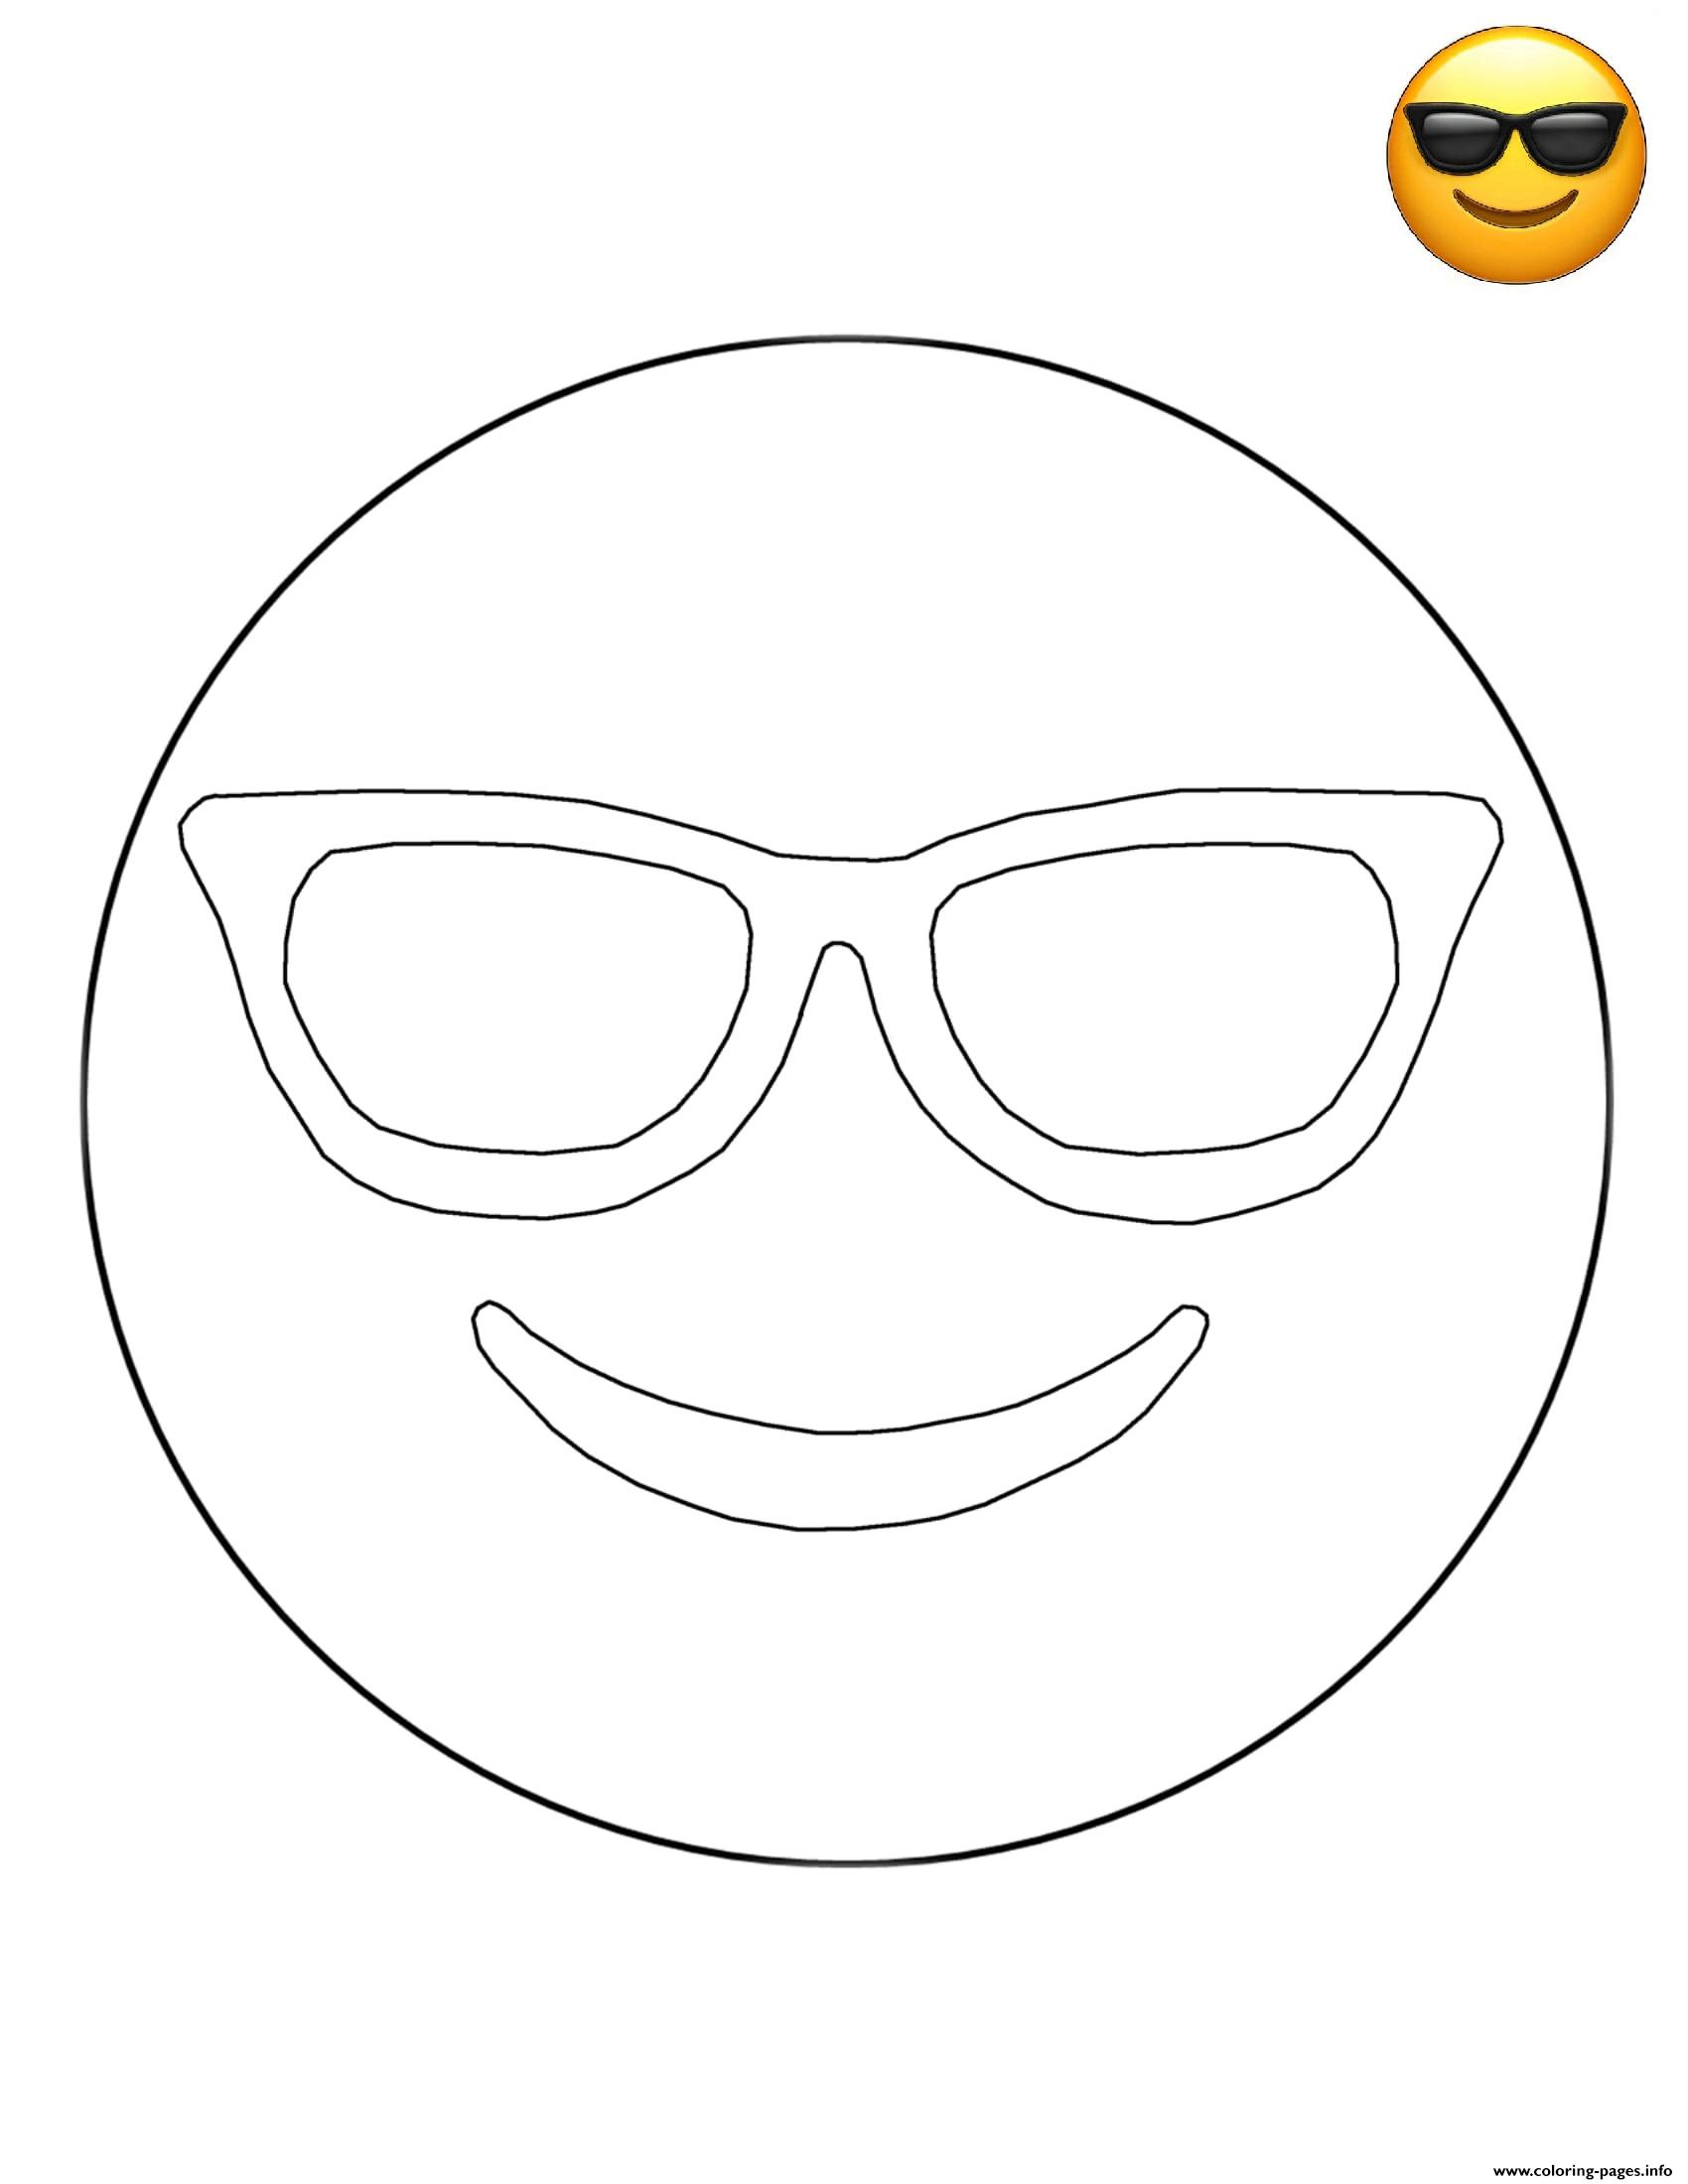 Emoji Sunglasses Free Sheets Coloring Pages Printable